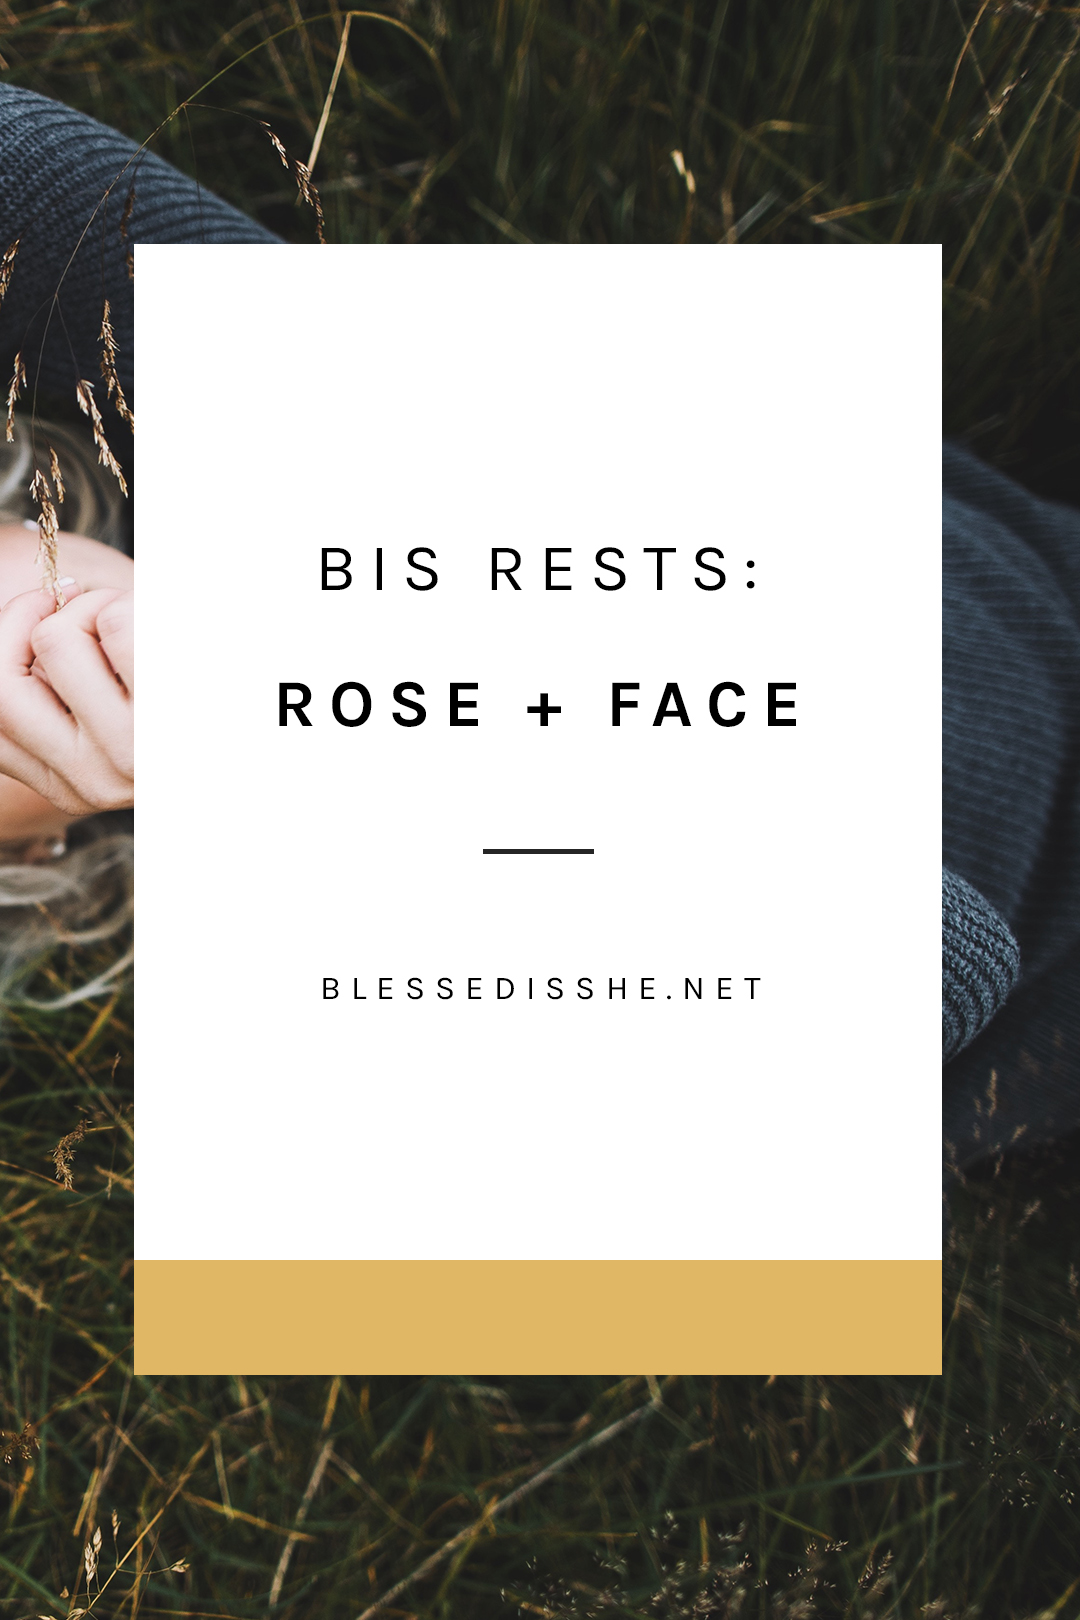 bis rests rose + face